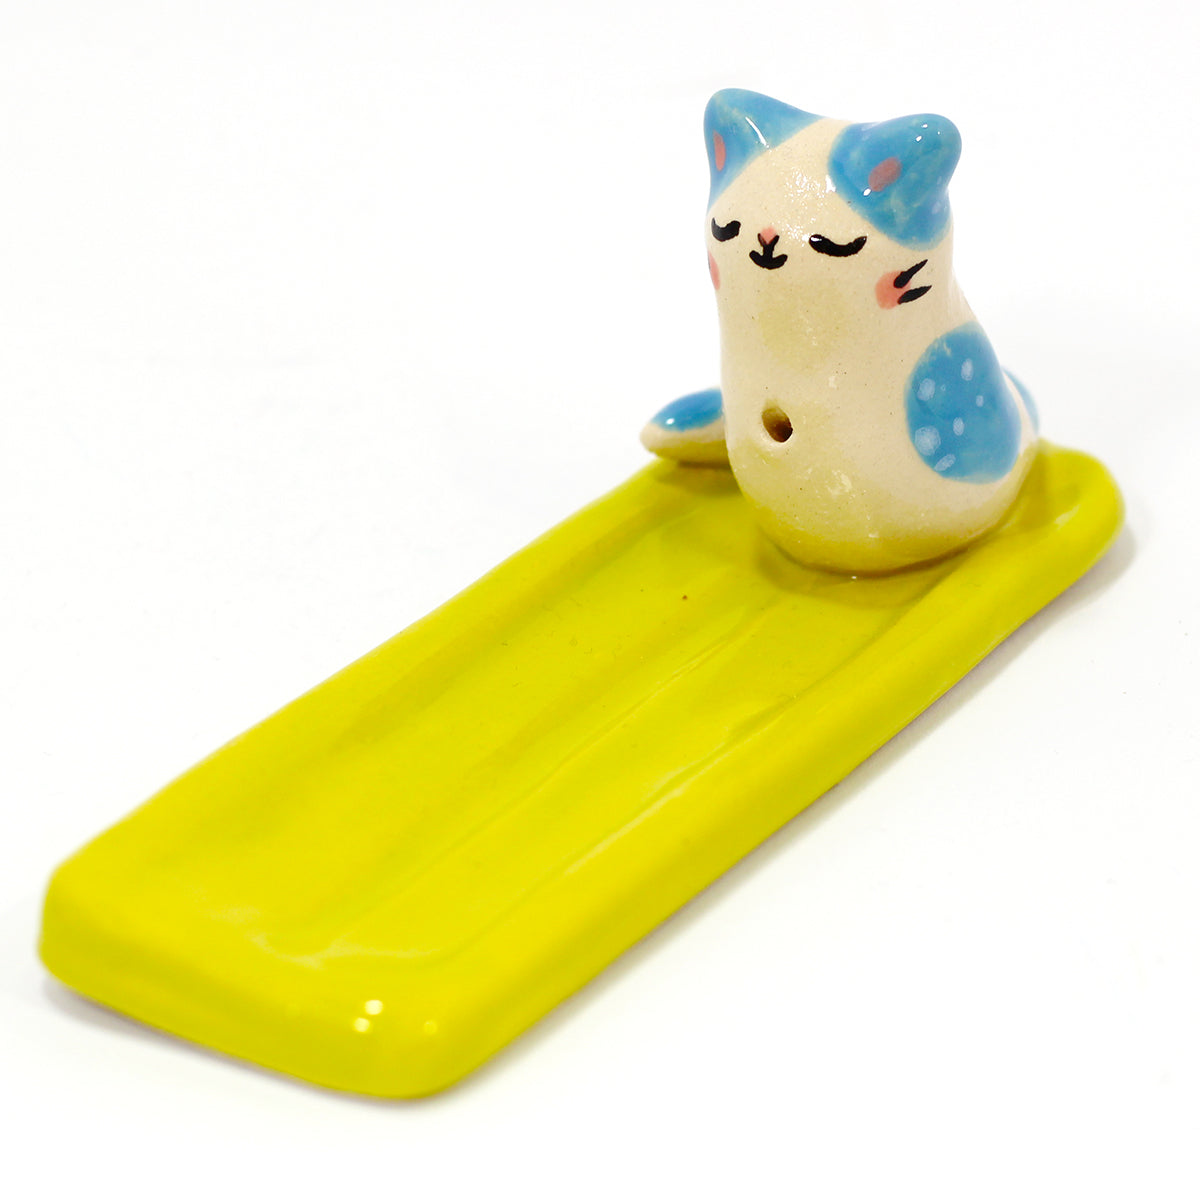 Ceramic Kitty Planter #790 - L